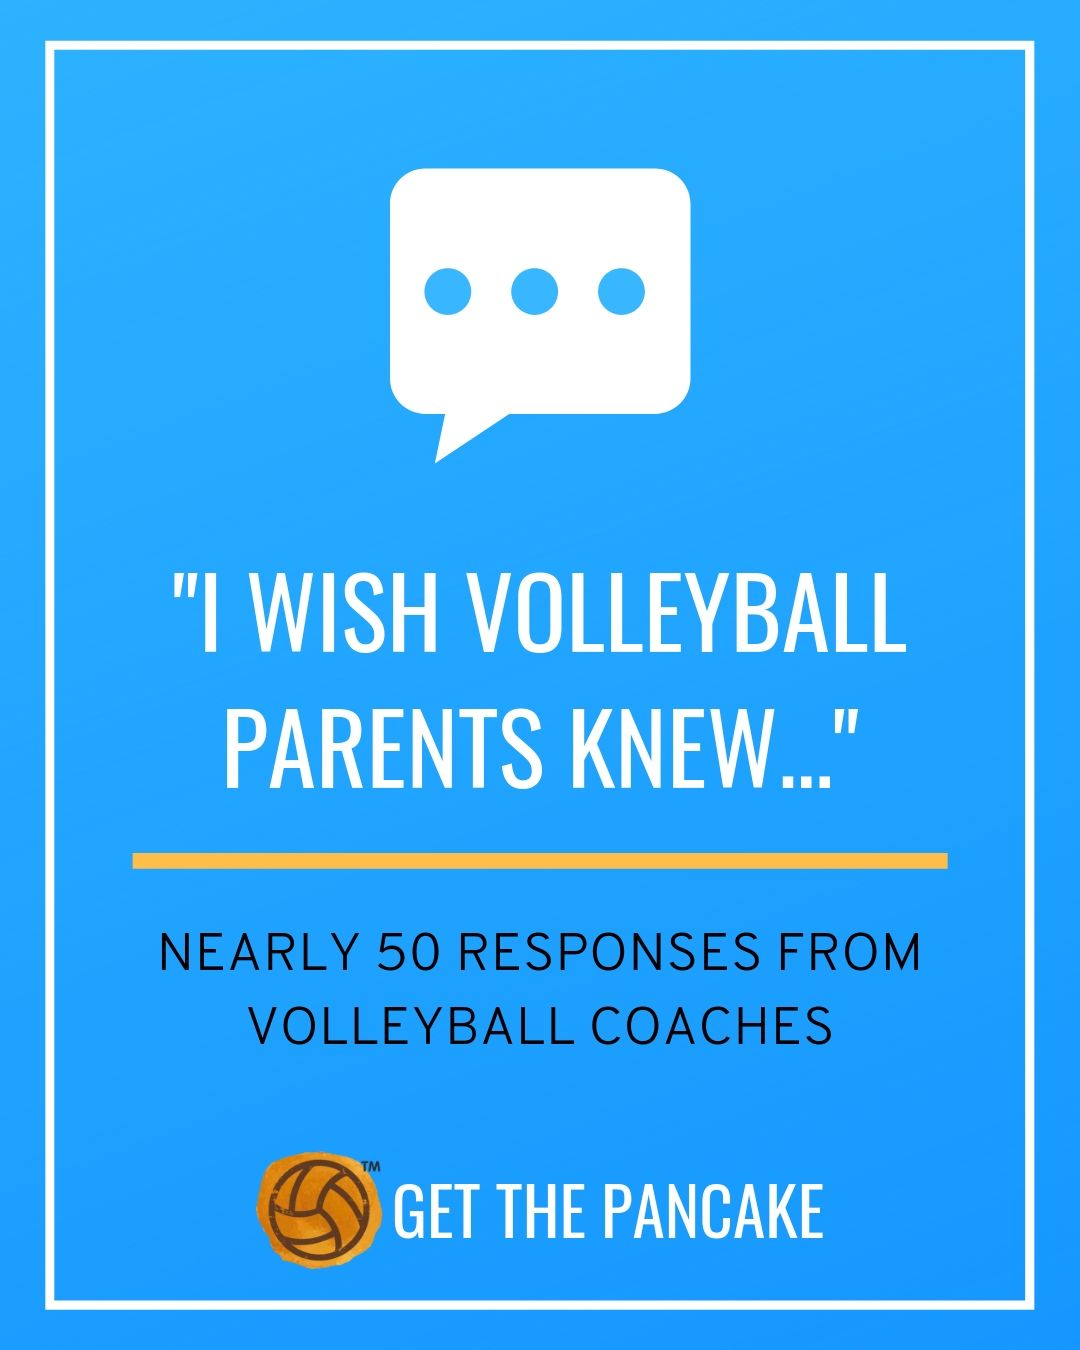 I Wish Volleyball Parents Knew.jpg